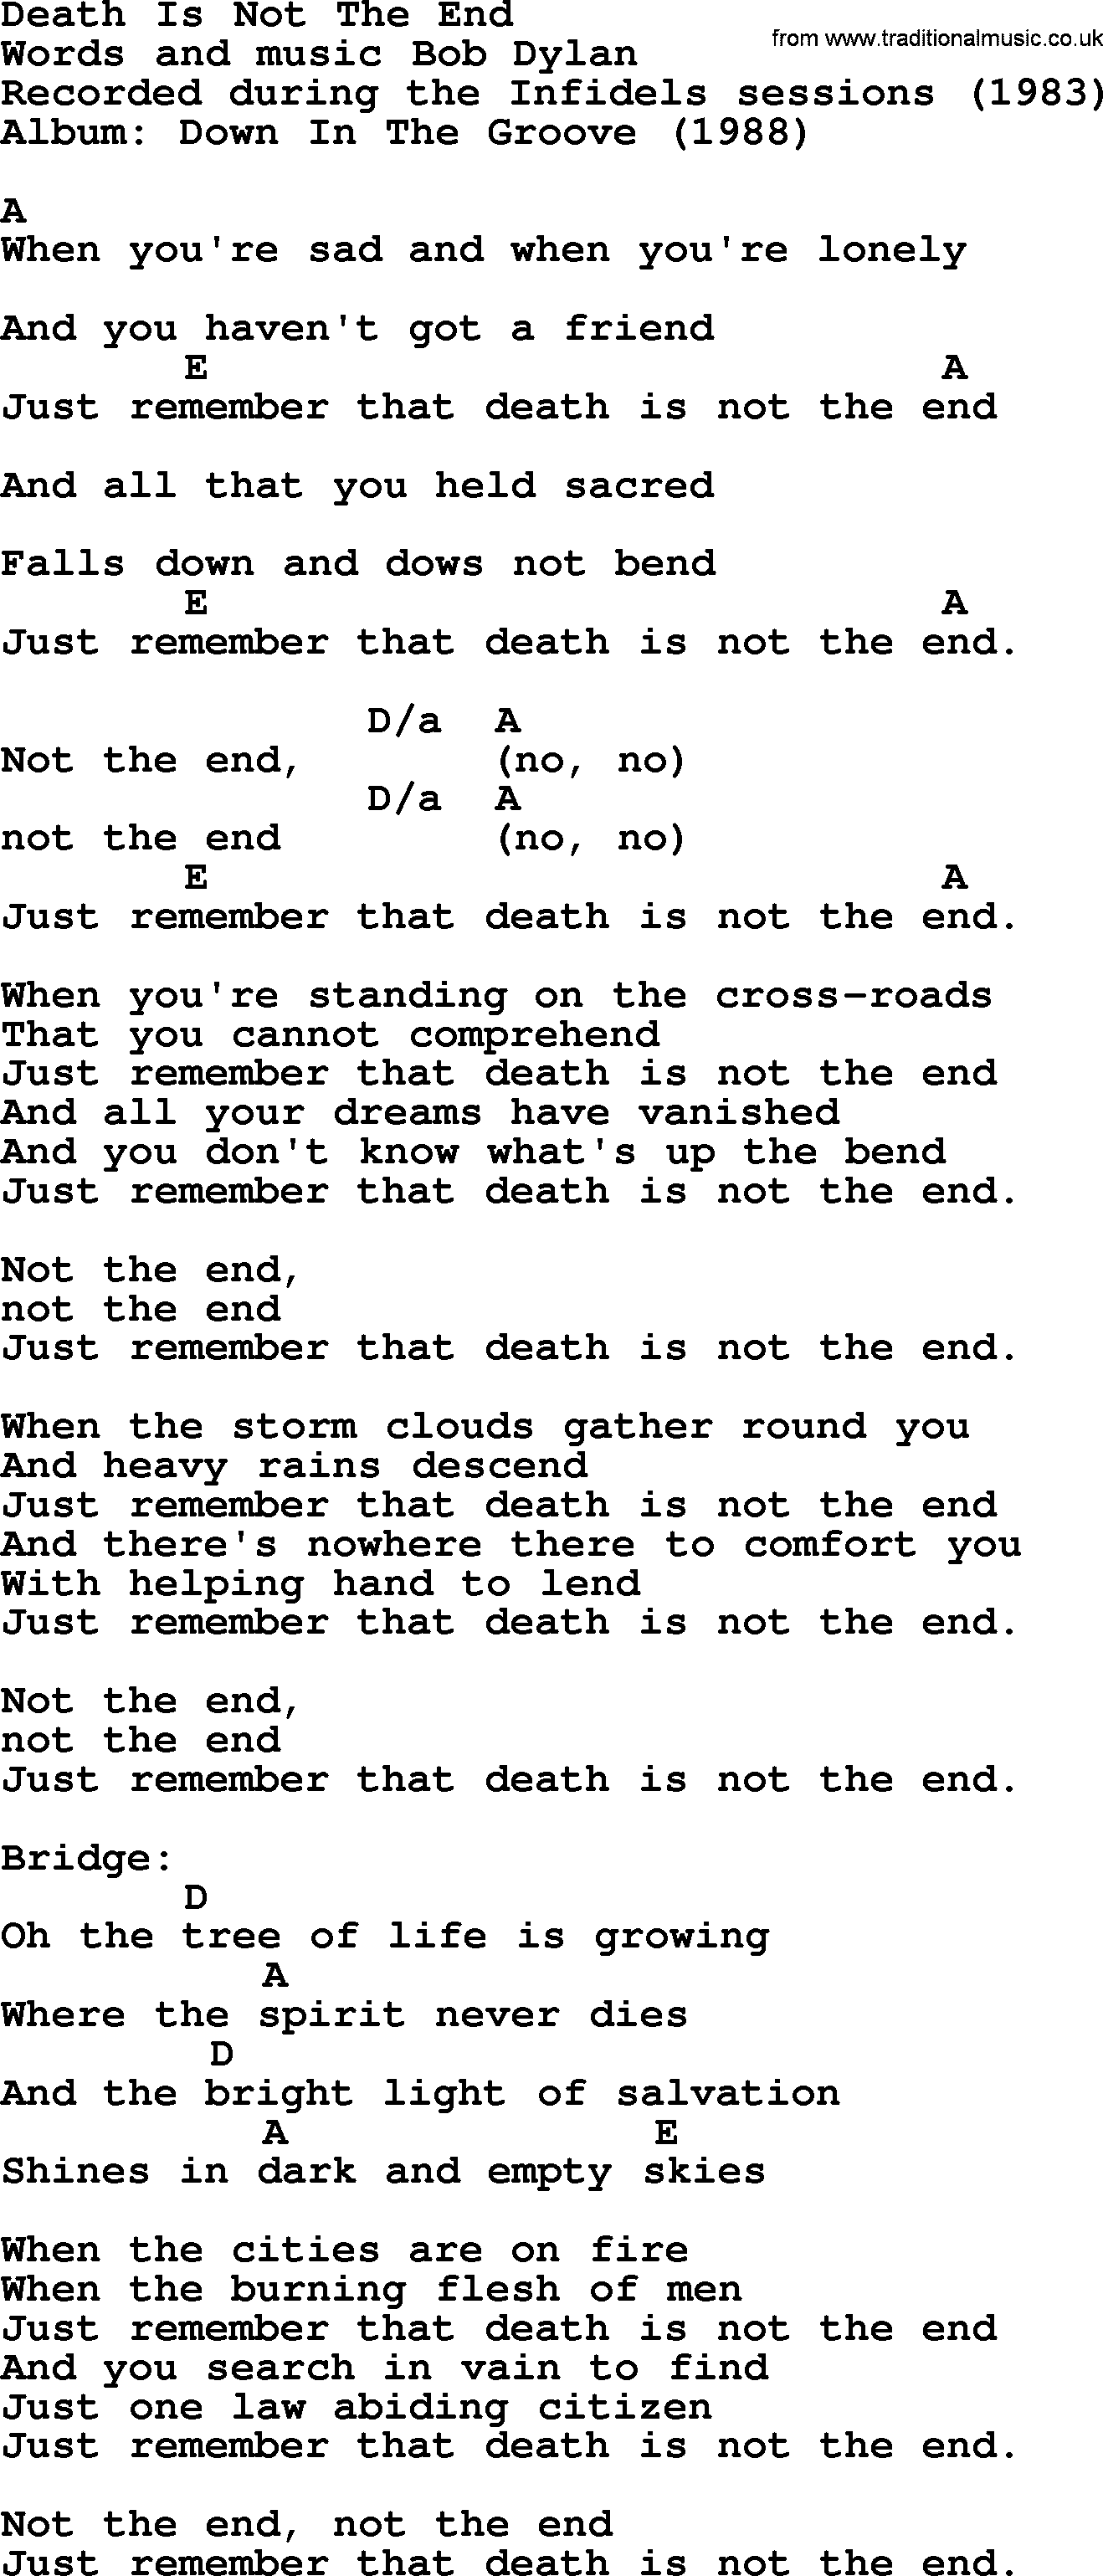 Bob dylan song death is not the end lyrics and chords bob dylan song lyrics with chords death is not the end hexwebz Images